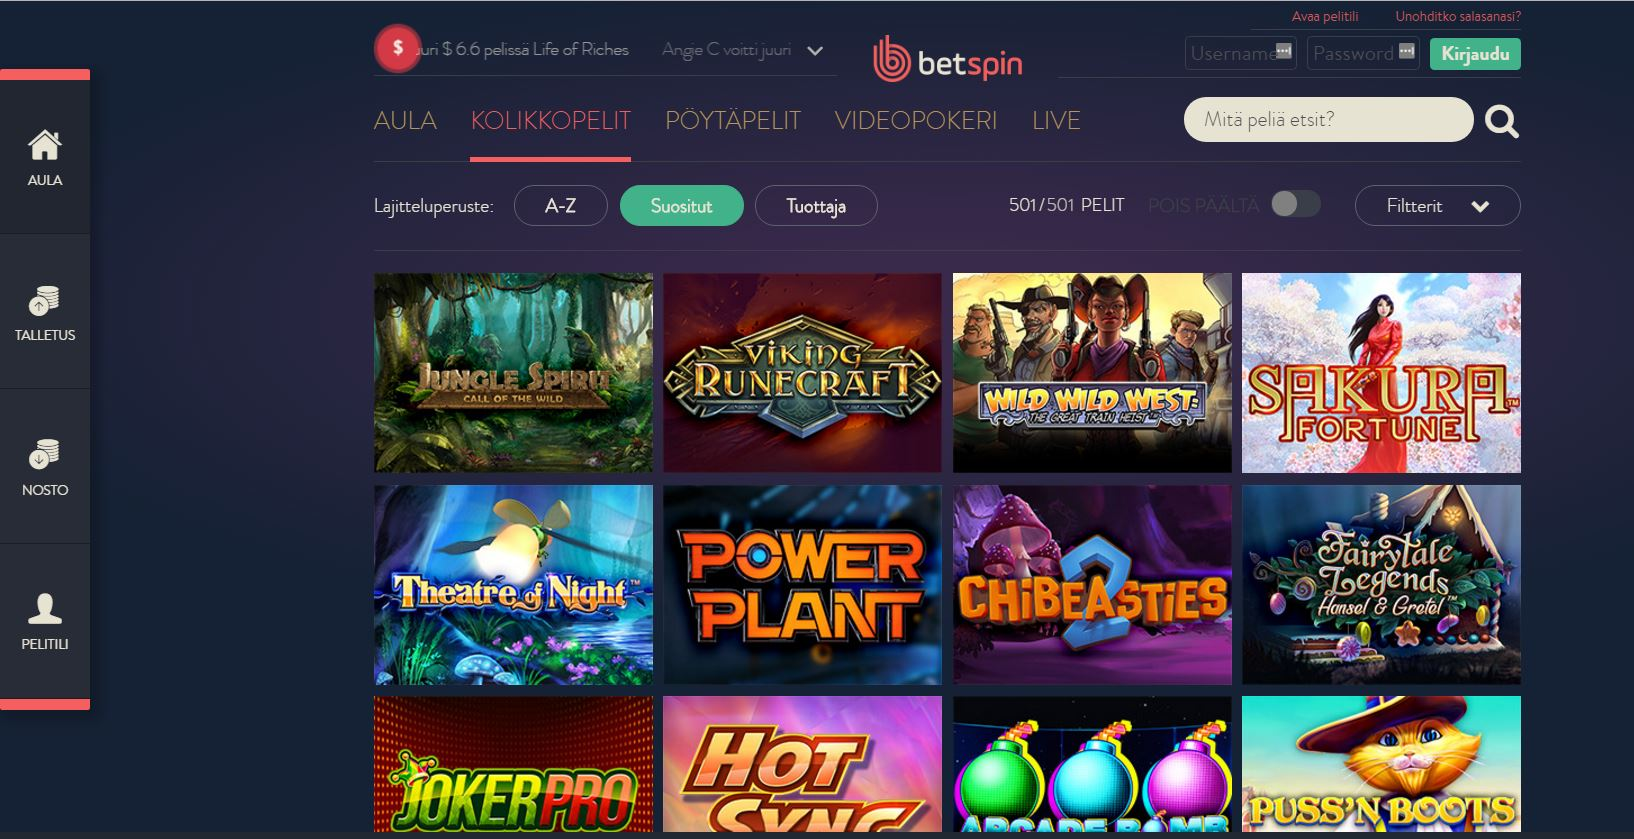 betspin pelit